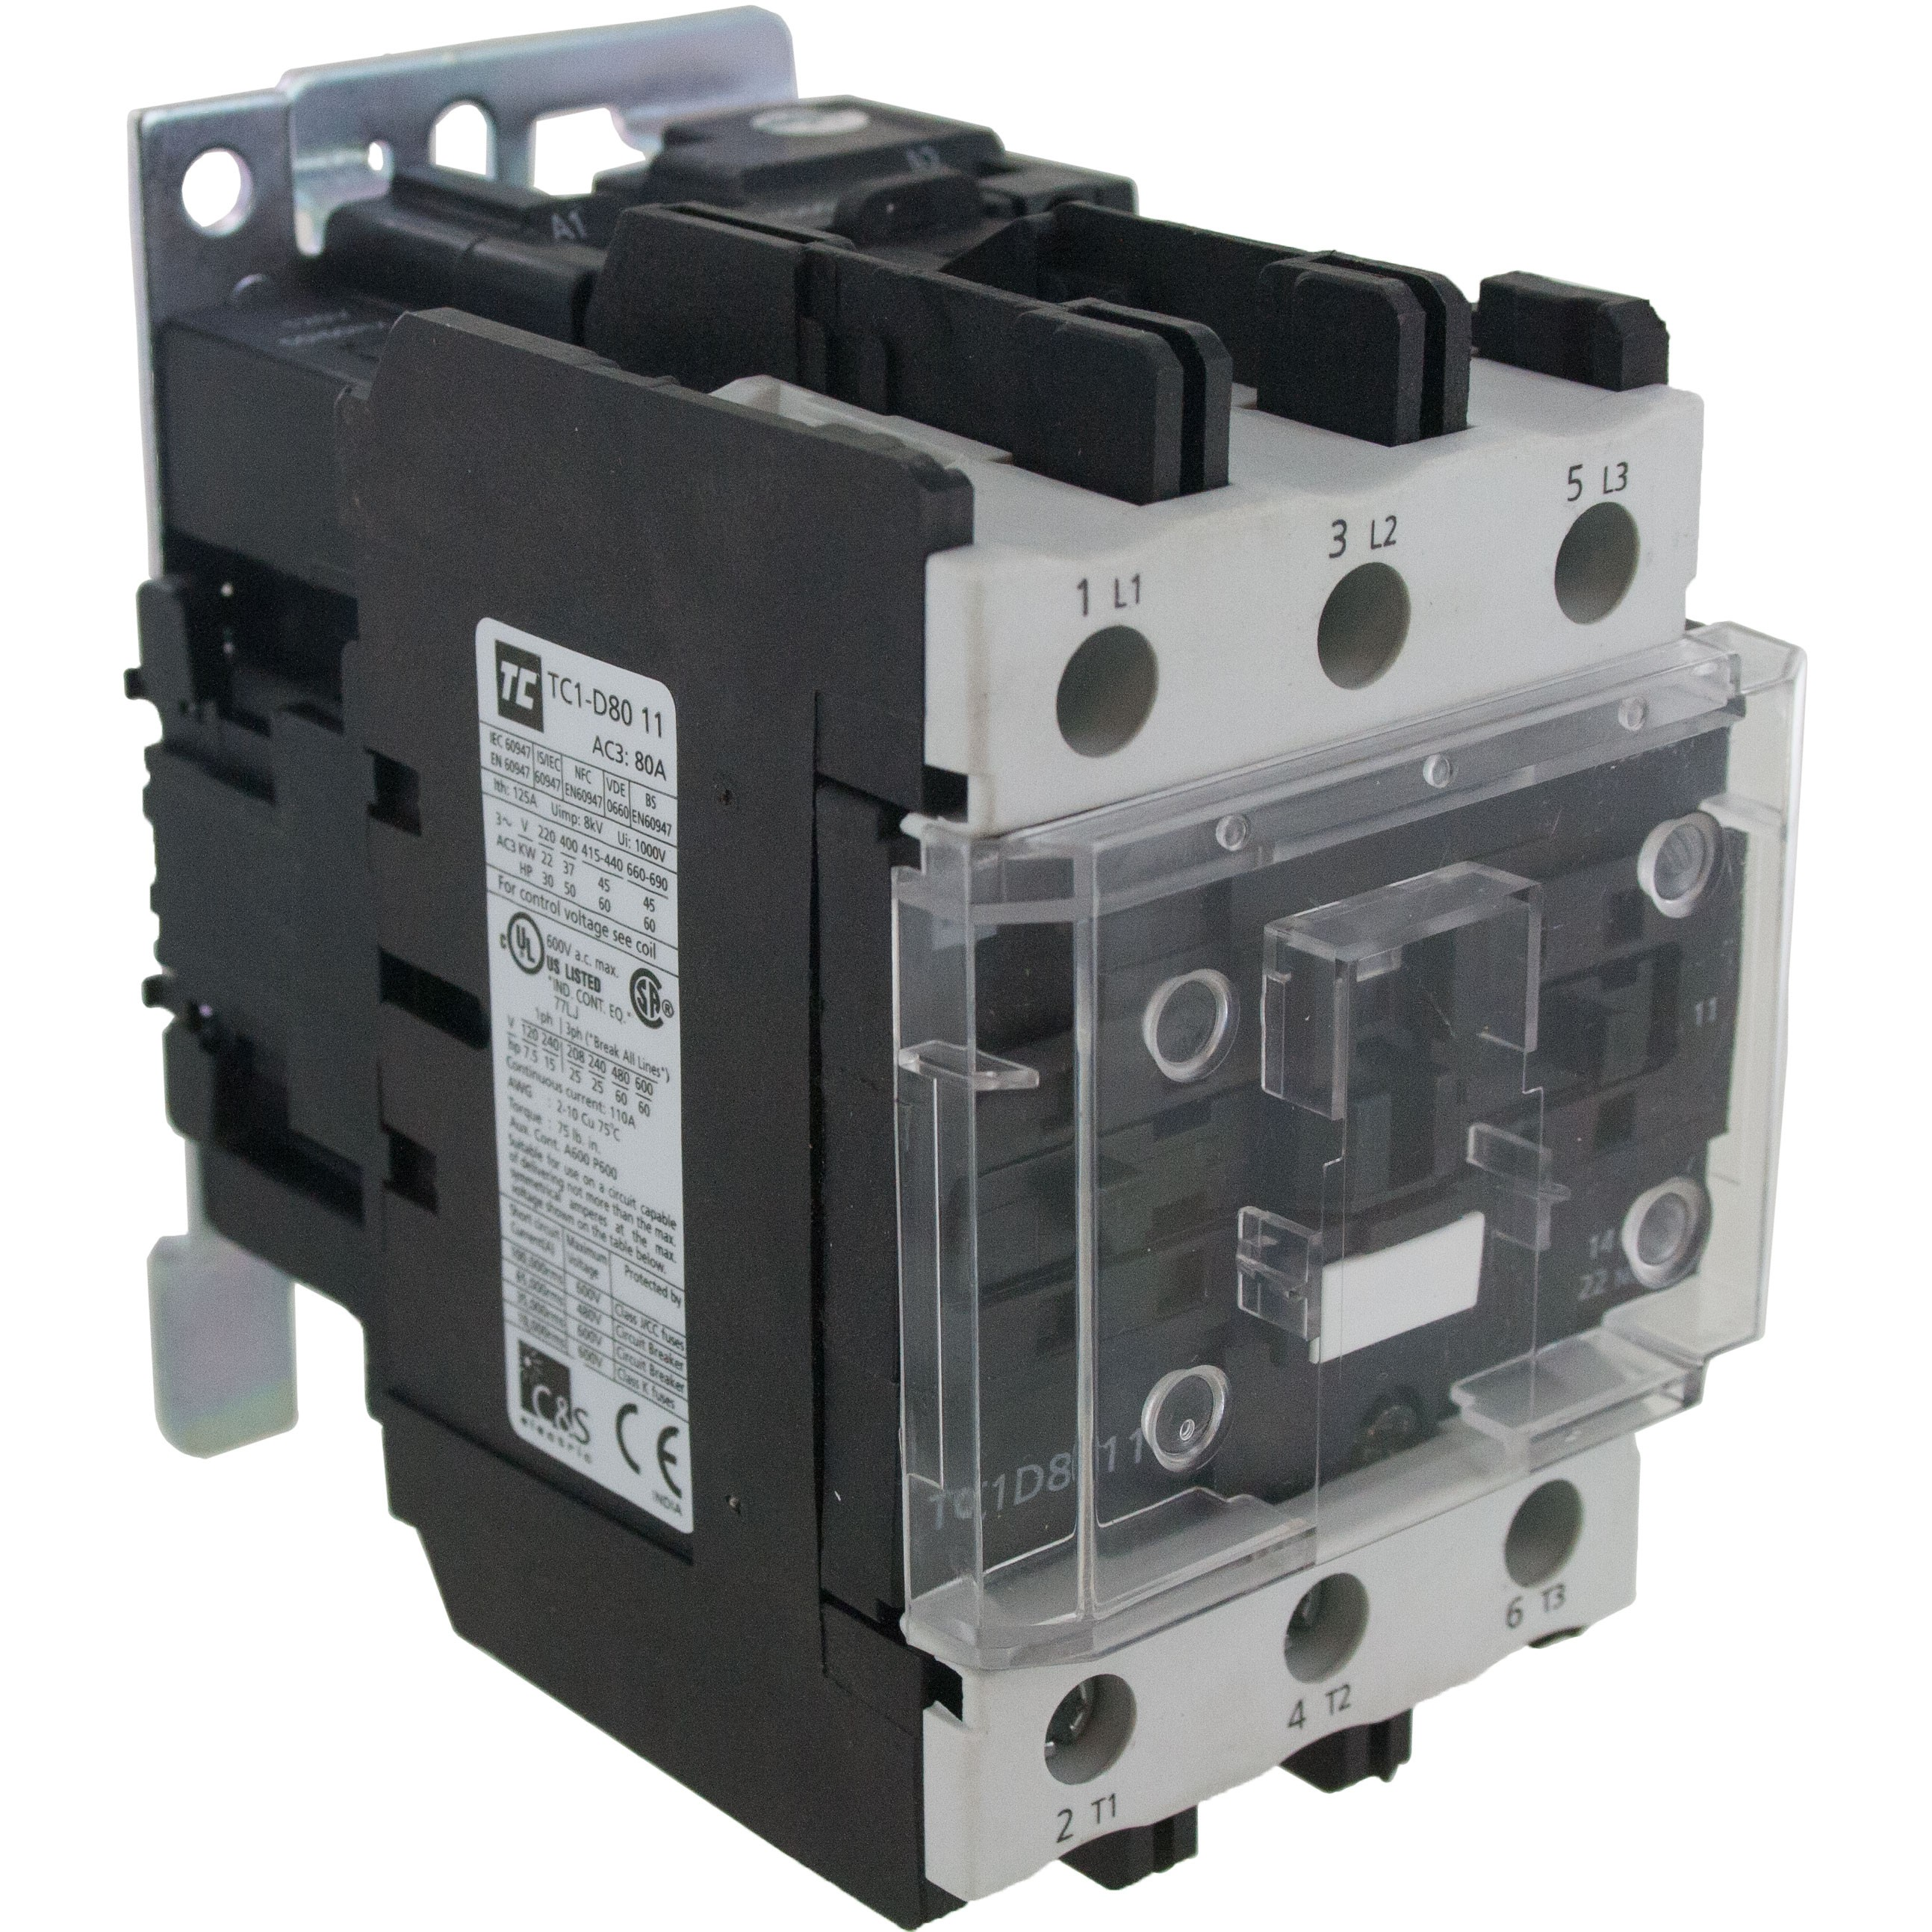 3 Pole Contactor 80 Amp 1 N/O - 1 N/C 240 Volt AC Coil Angle